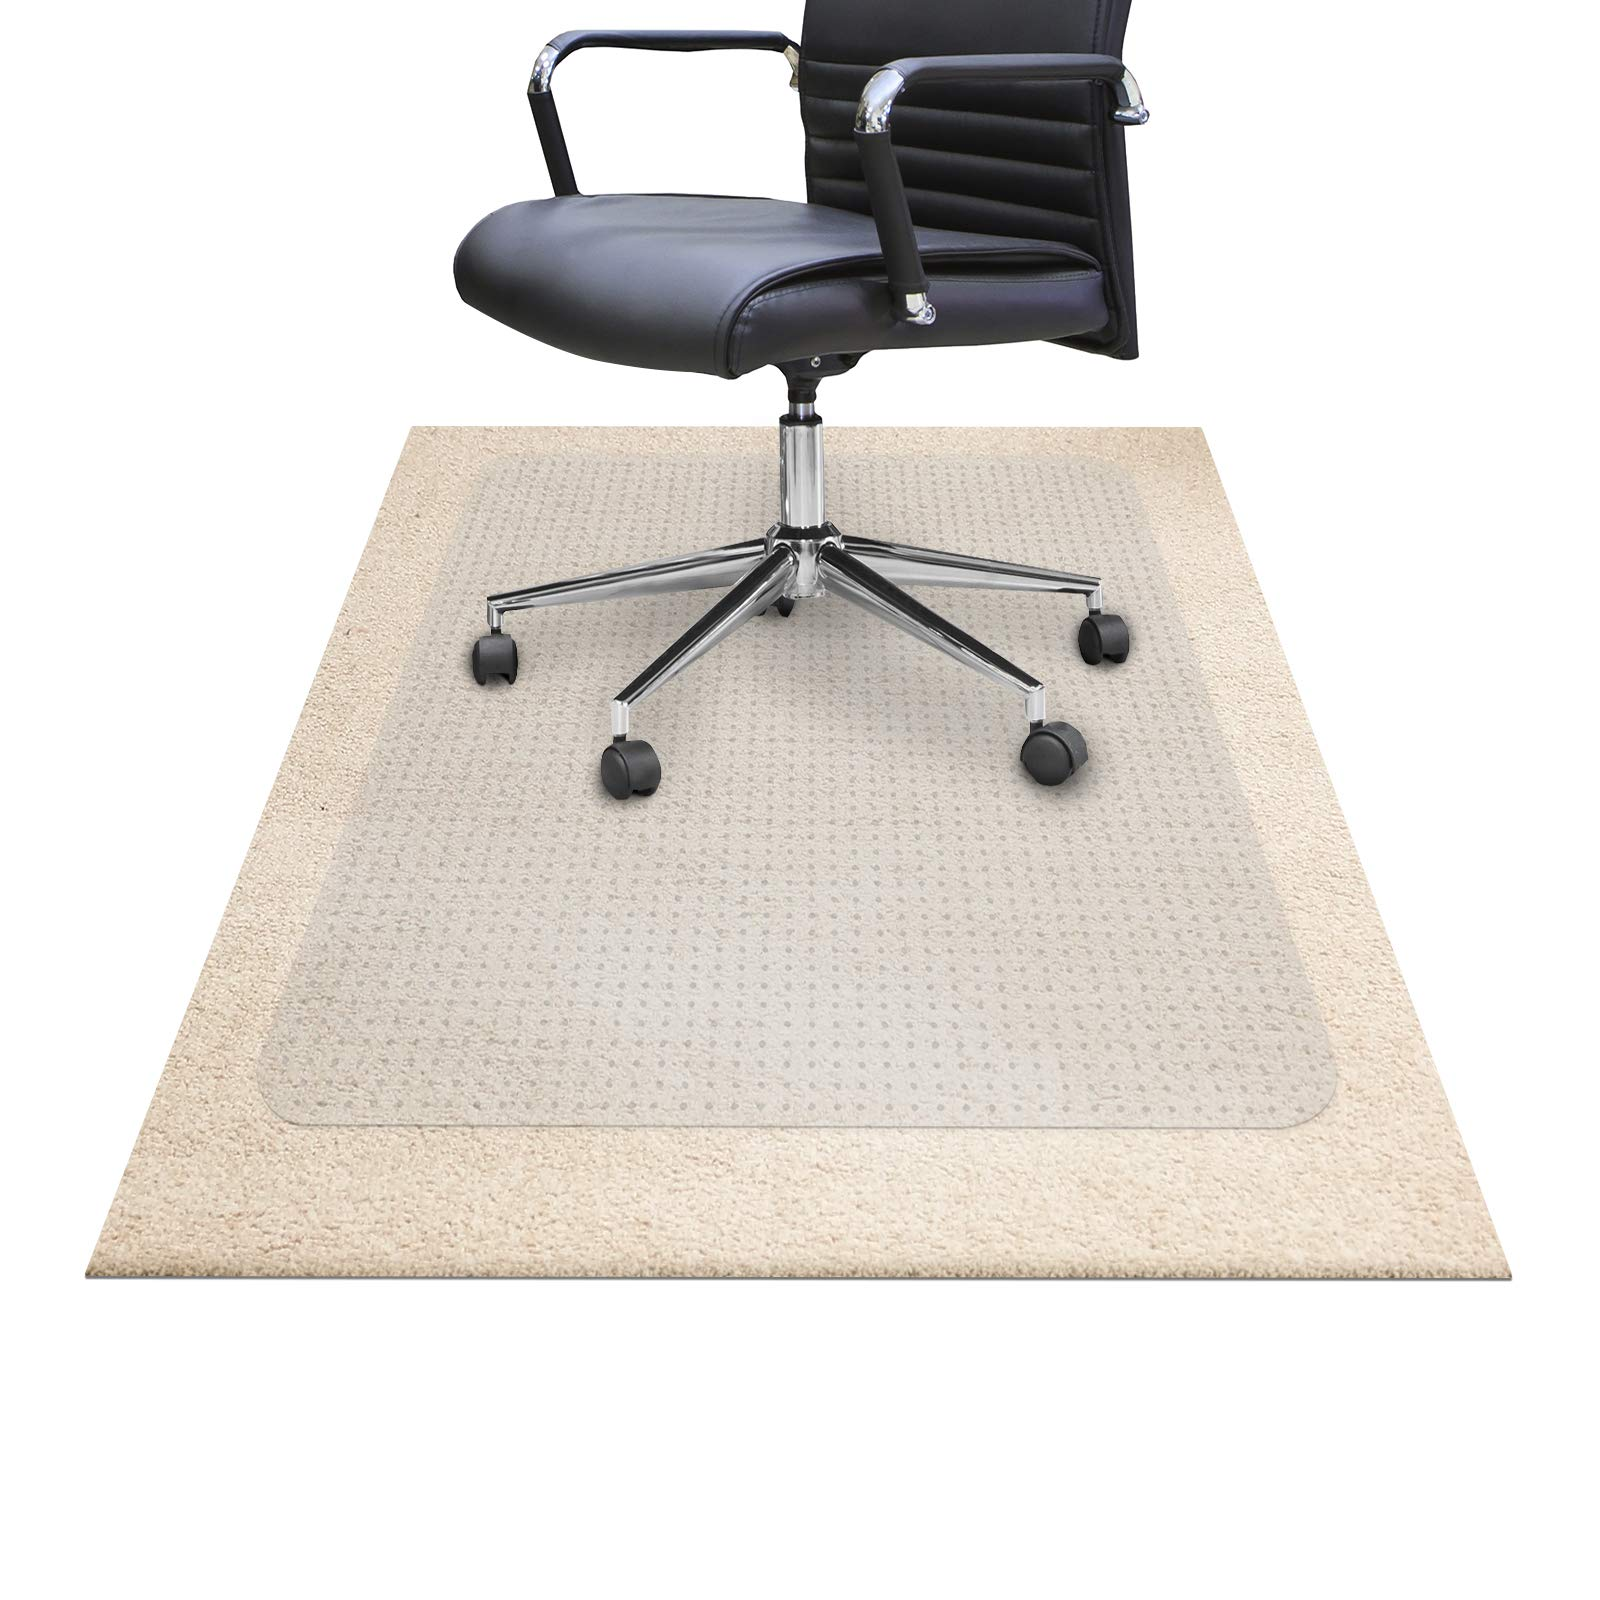 Chair Mats for Carpeted Floors - Shatter-Proof Carpet Protector for Desk Chair | Eco-Friendly Low/Medium Pile Office Chair Mat for Carpet | Clear - 40'' x 48'' by OfficeMarshal